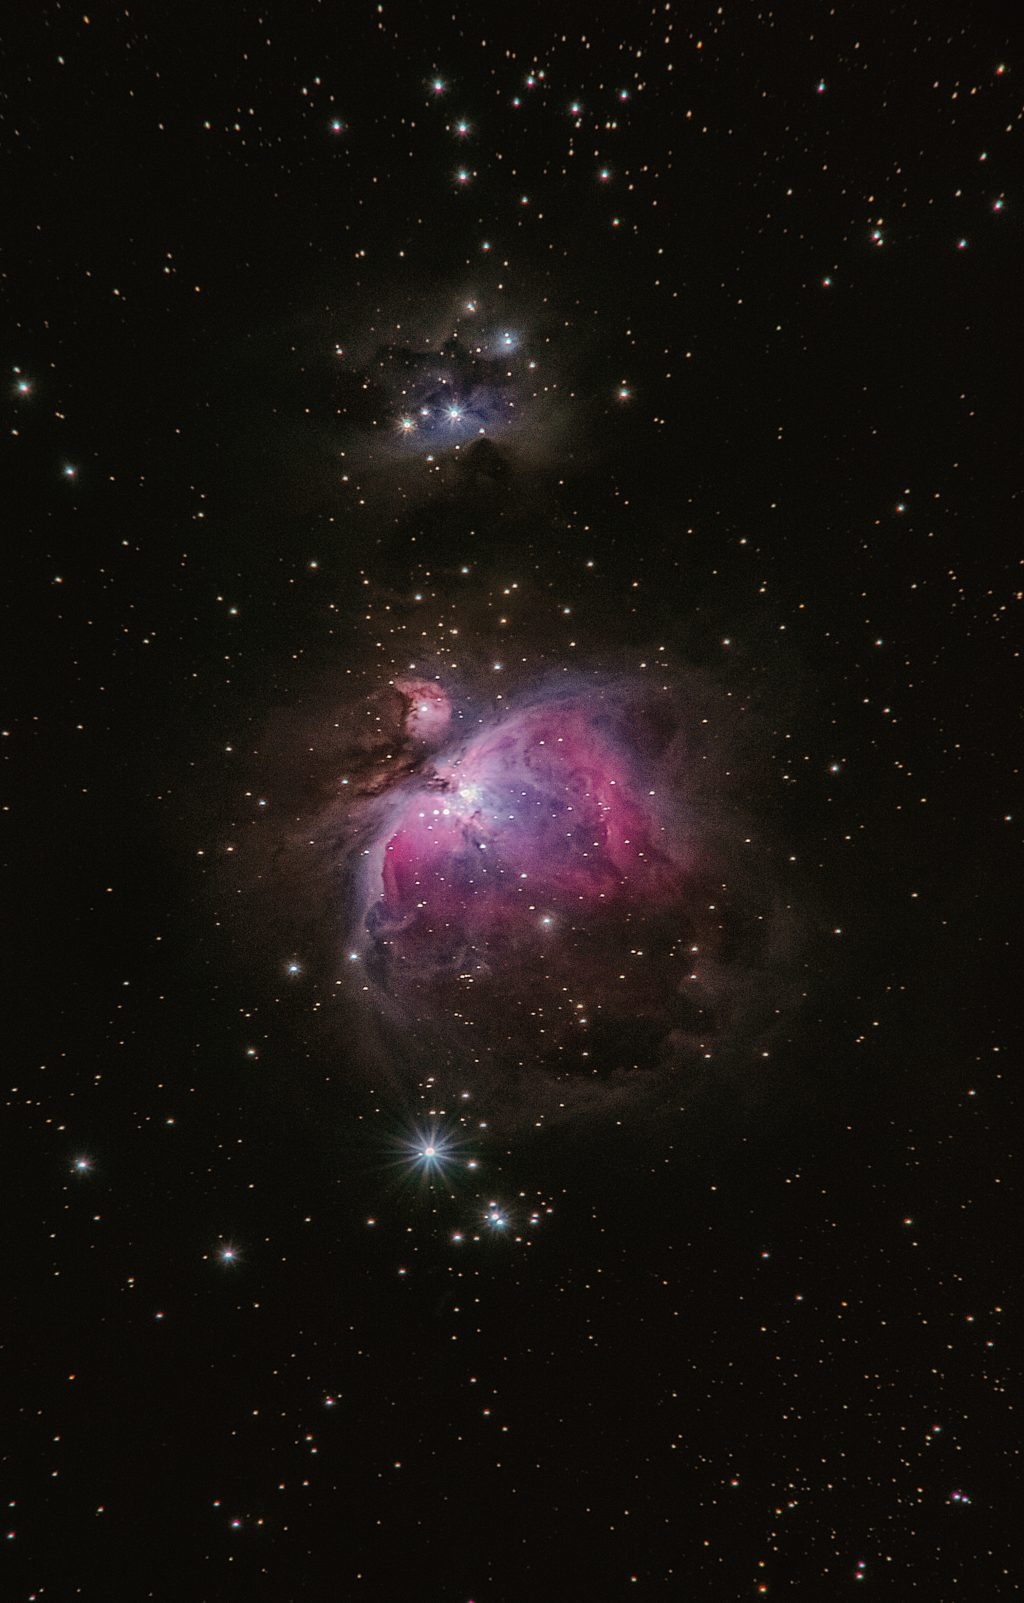 Astrophotography - Image of the Orion Nebula